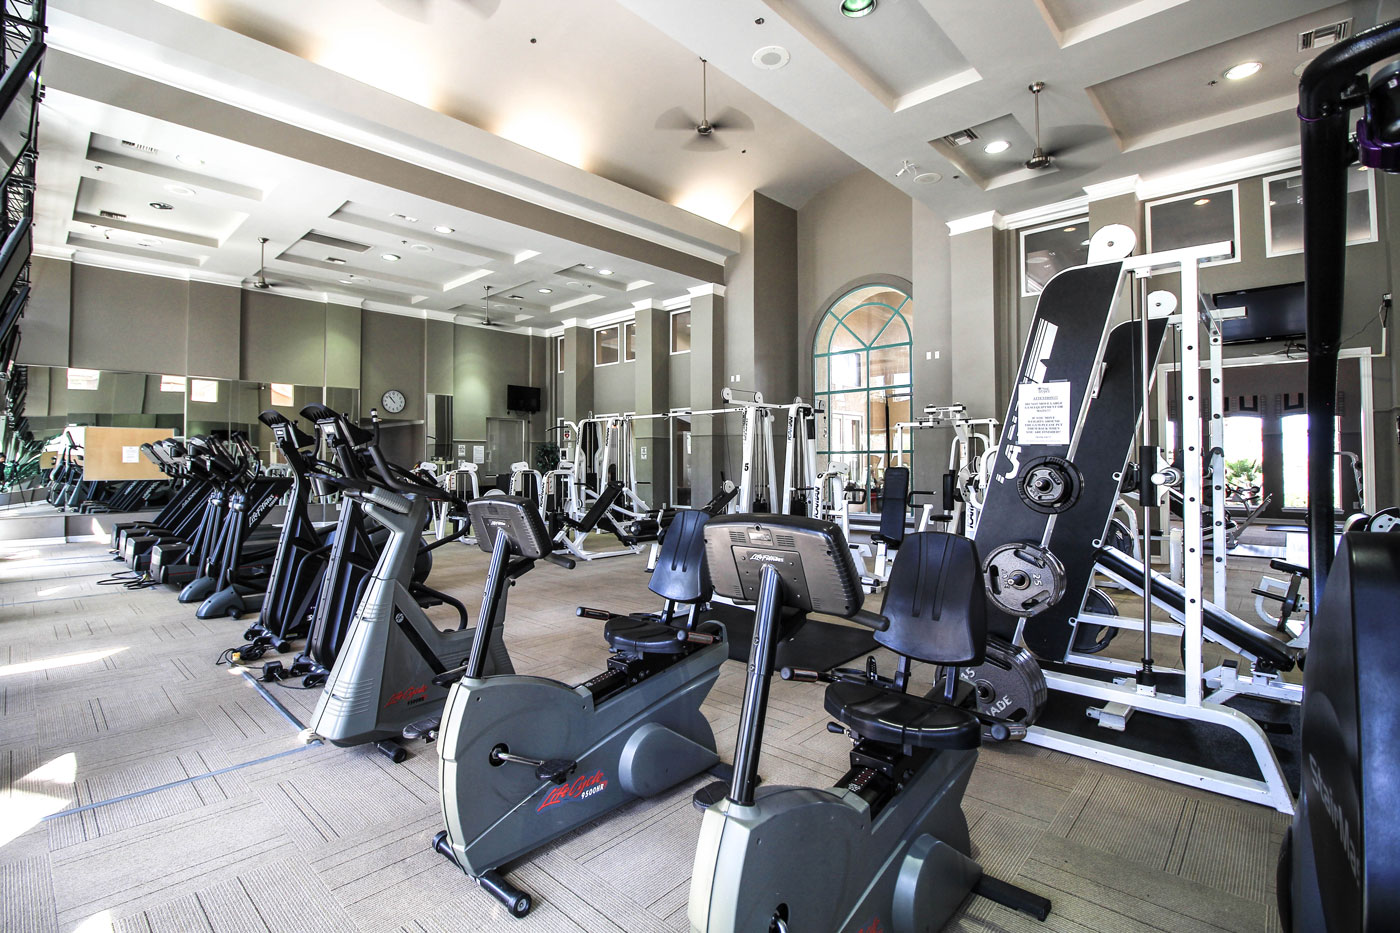 Gym with equipment at San Tropez in Las Vegas.